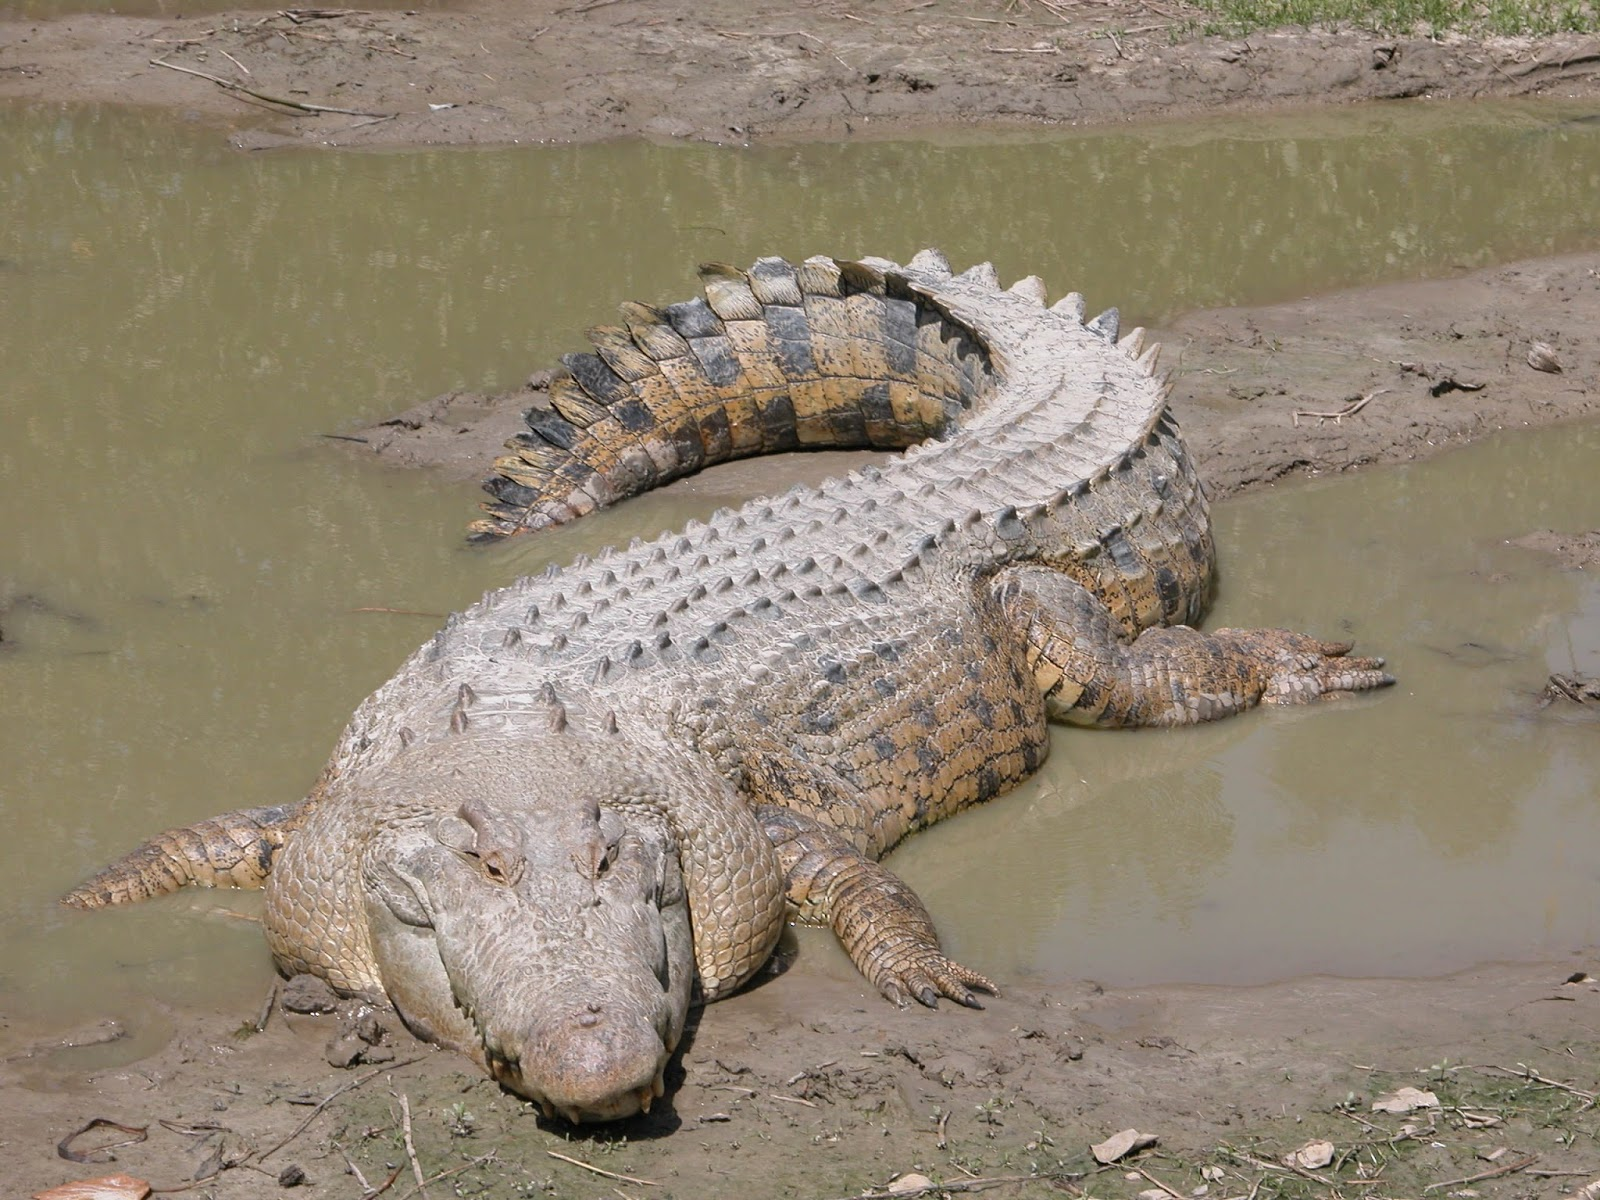 An image of a saltwater crocodile.